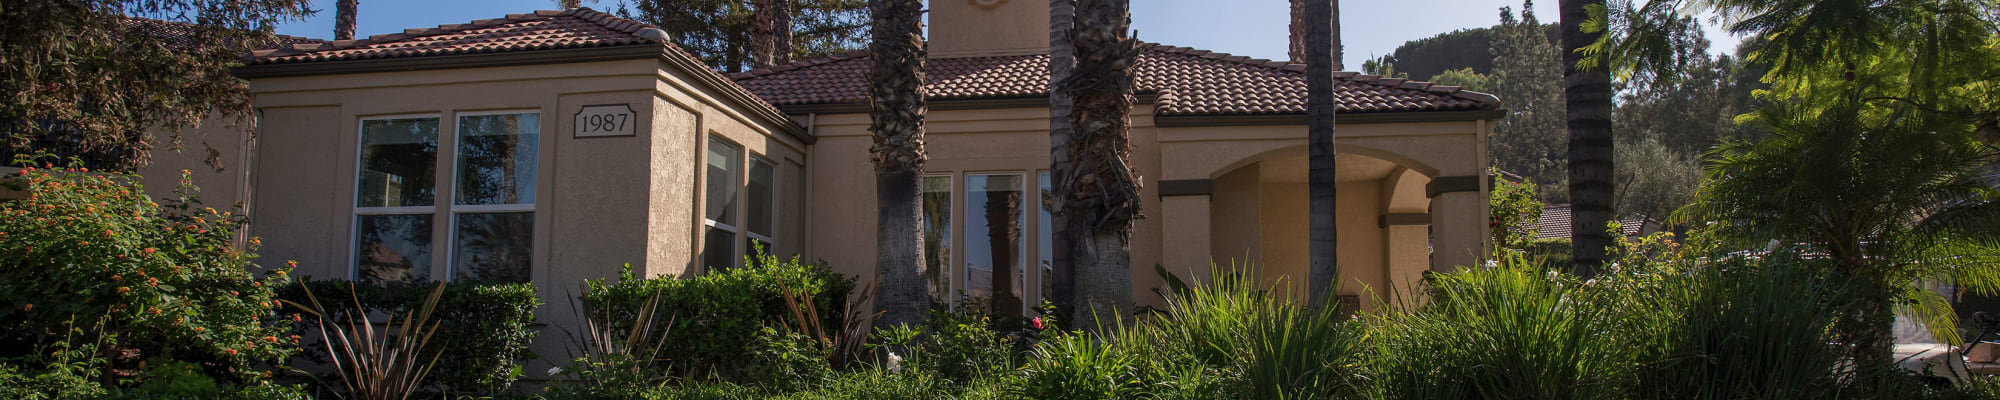 Resident perks at Shadow Ridge Apartment Homes in Simi Valley, California